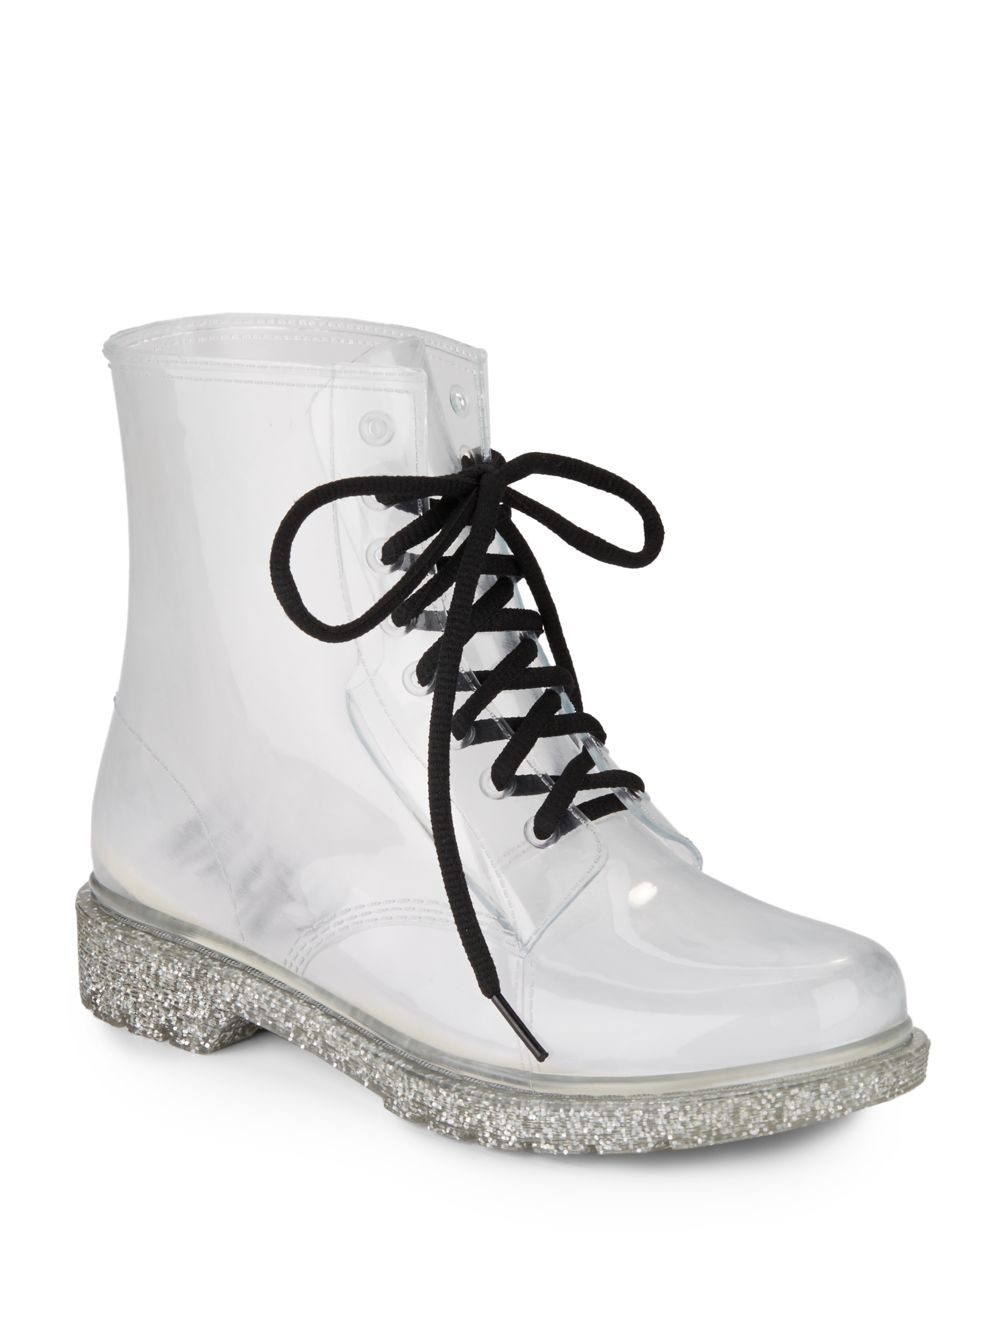 87453c359f314 Lyst - Circus by Sam Edelman Quinn Glitter-heel Boots in White